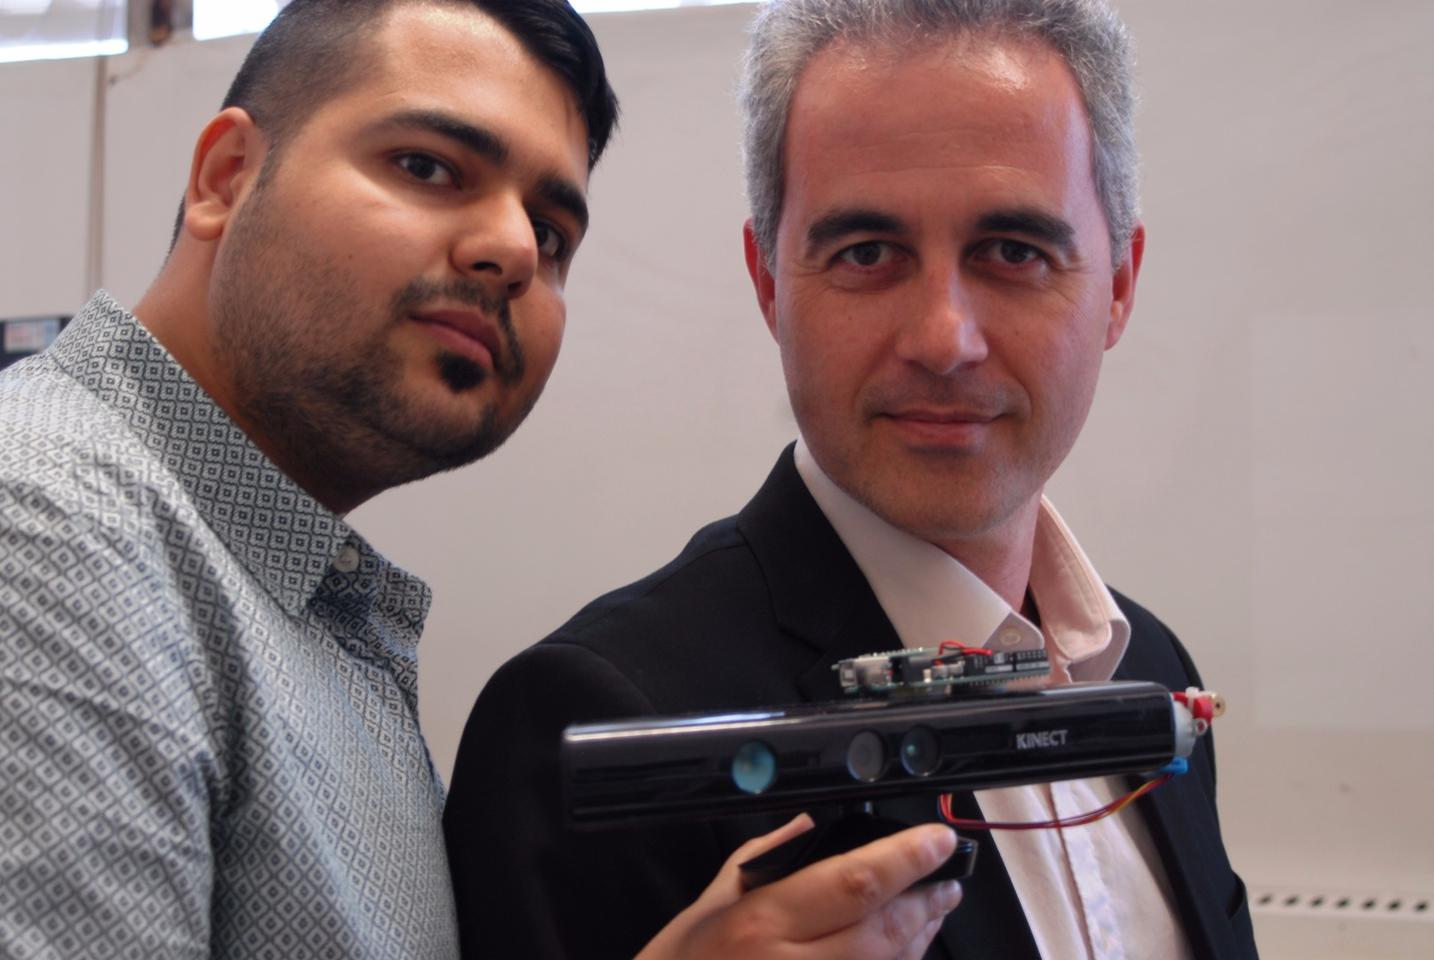 Amin Amini Maghsoud Bigy and Dr Konstantinos Banitsas with the Kinect modified to help Parkinson's patients overcome Freezing of Gait